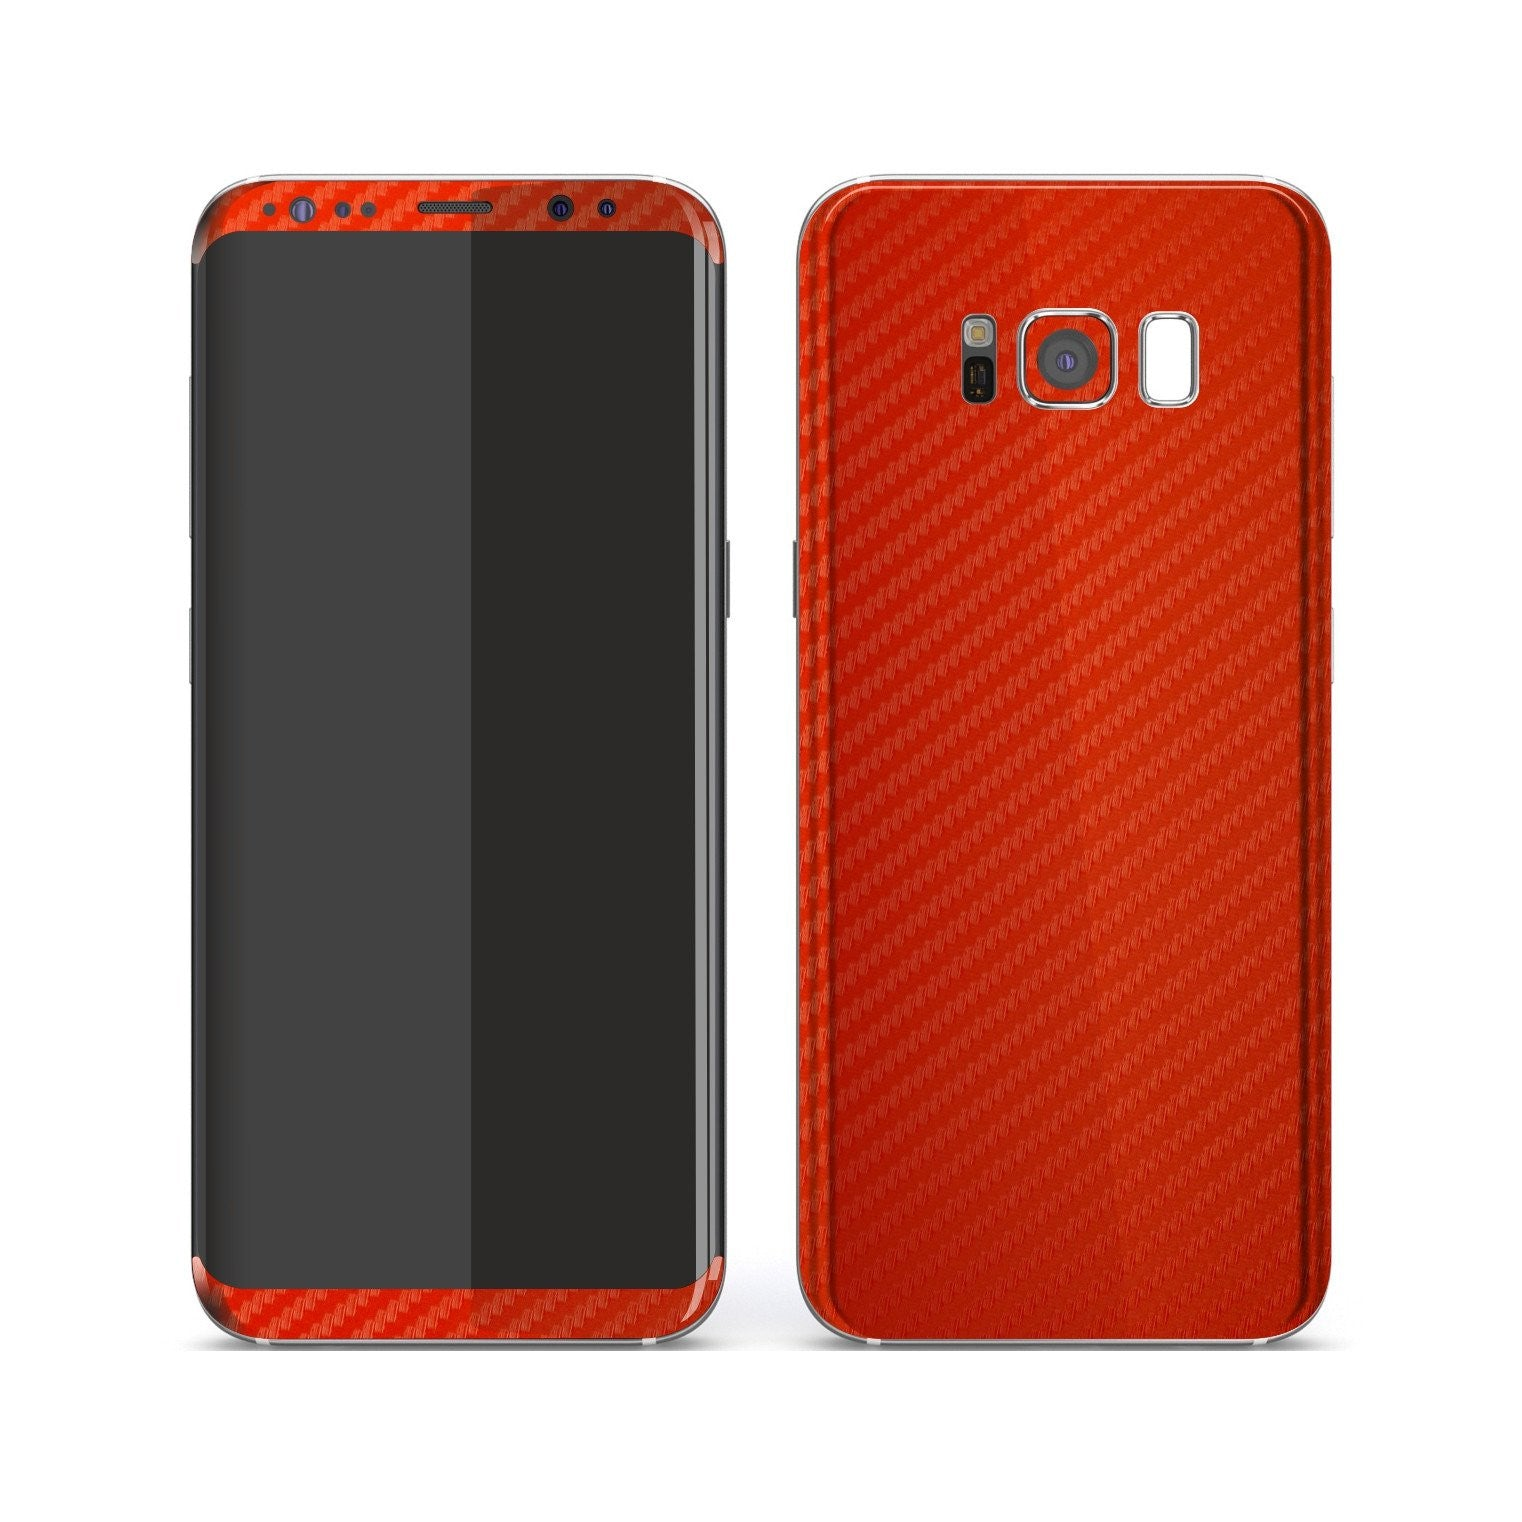 Samsung Galaxy S8 3D Textured Red Carbon Fibre Fiber Skin, Decal, Wrap, Protector, Cover by EasySkinz | EasySkinz.com